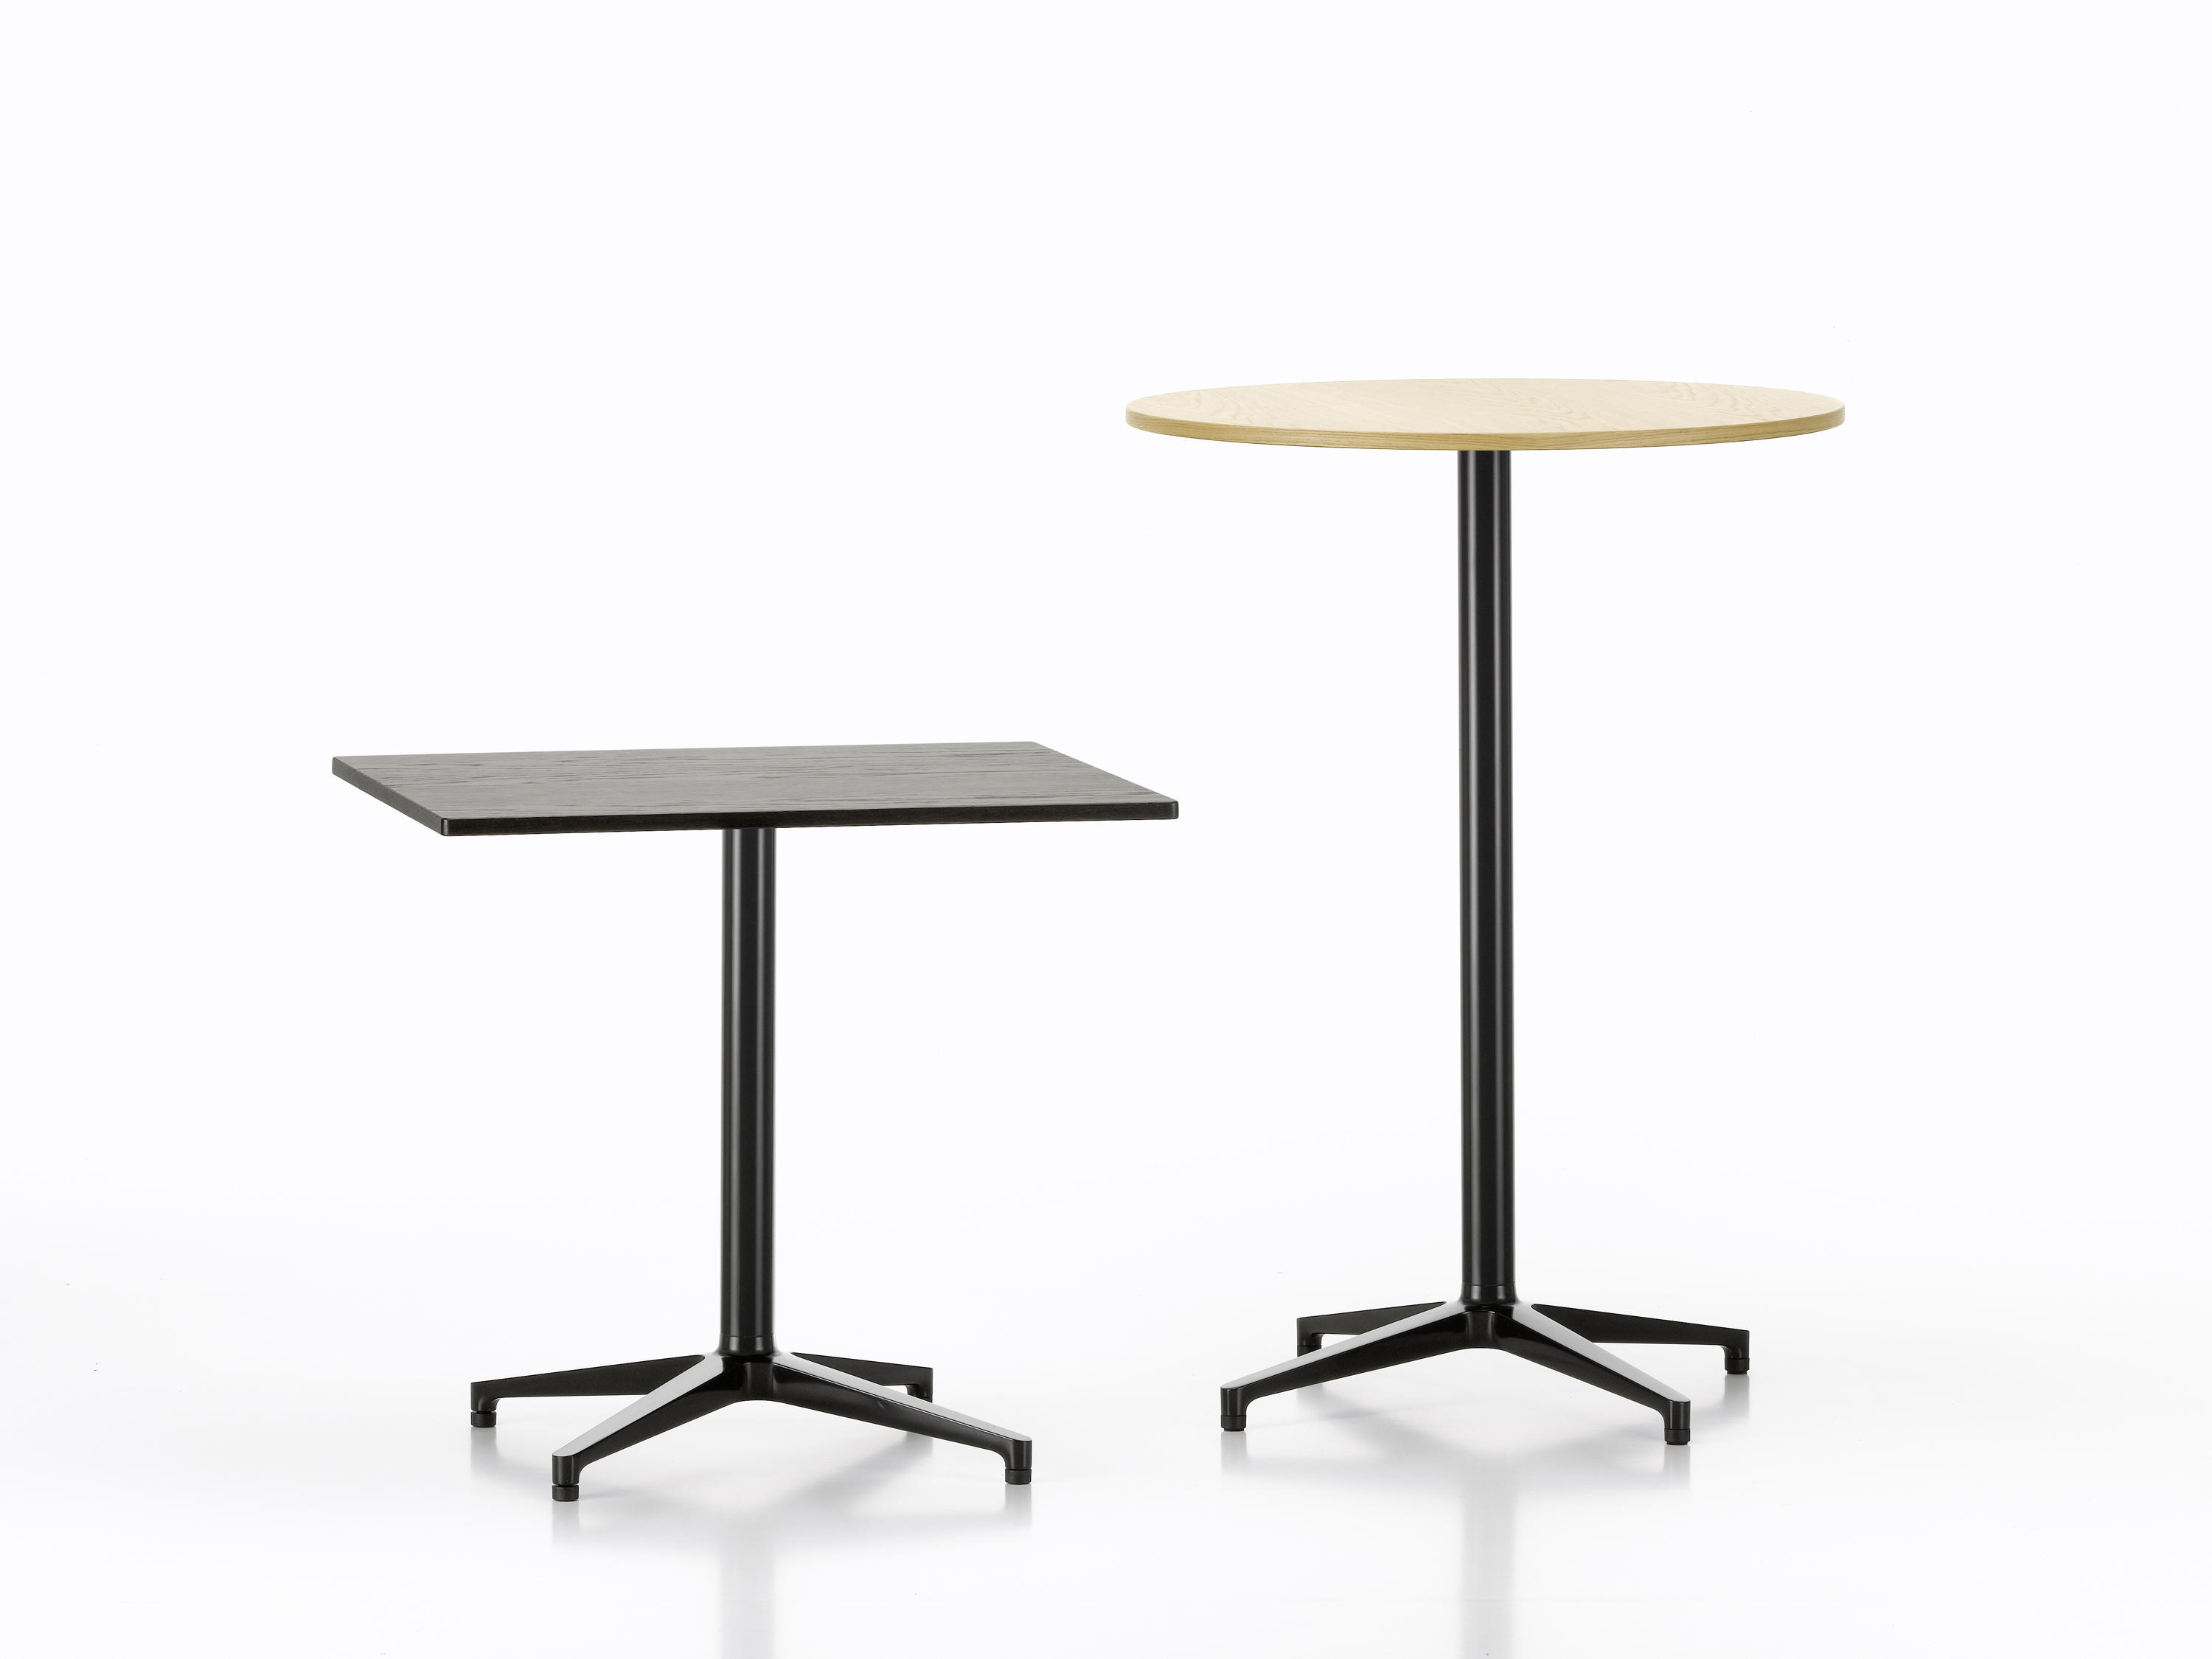 bistro table standing tables from vitra architonic. Black Bedroom Furniture Sets. Home Design Ideas